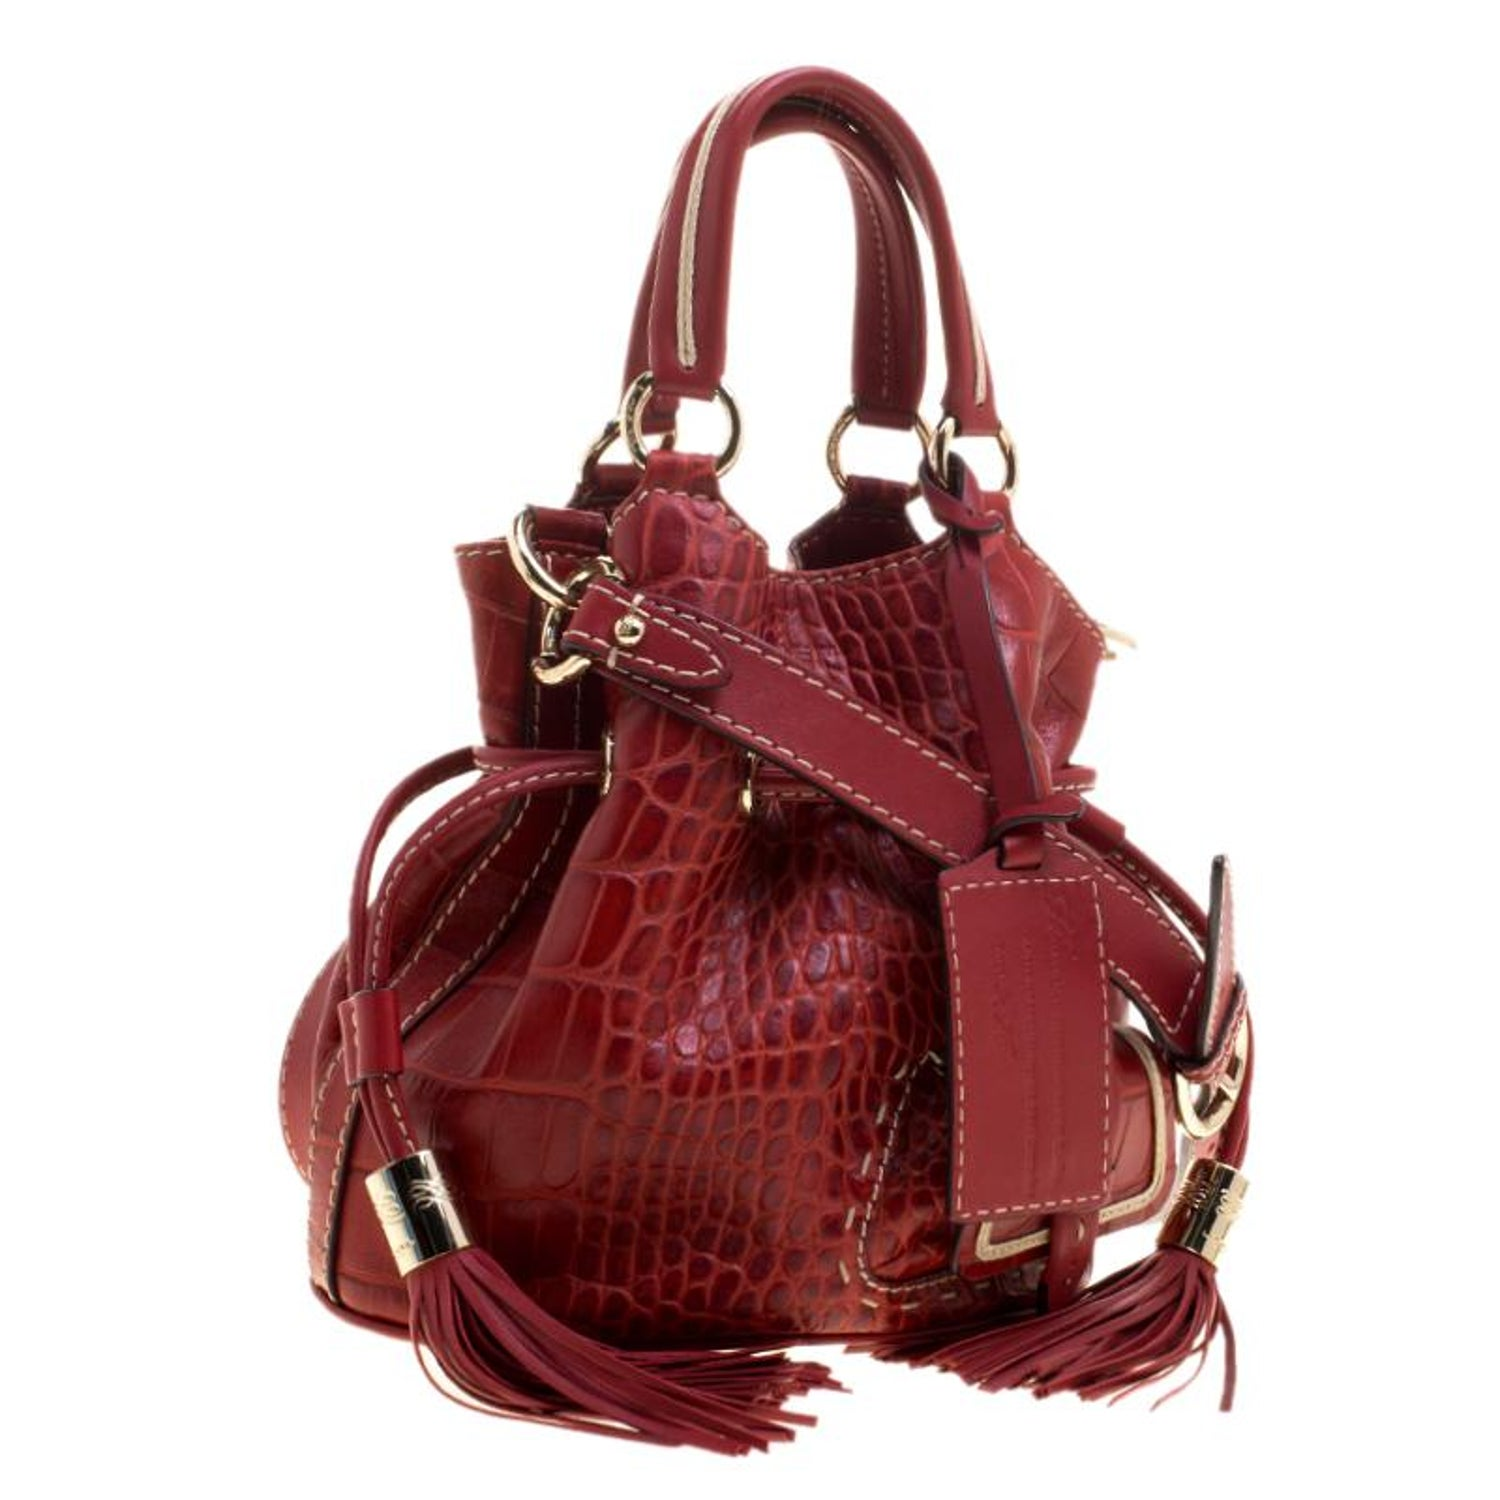 78357e7f94c Lancel Red Croc Embossed Leather Small Premier Flirt Bucket Bag For Sale at  1stdibs